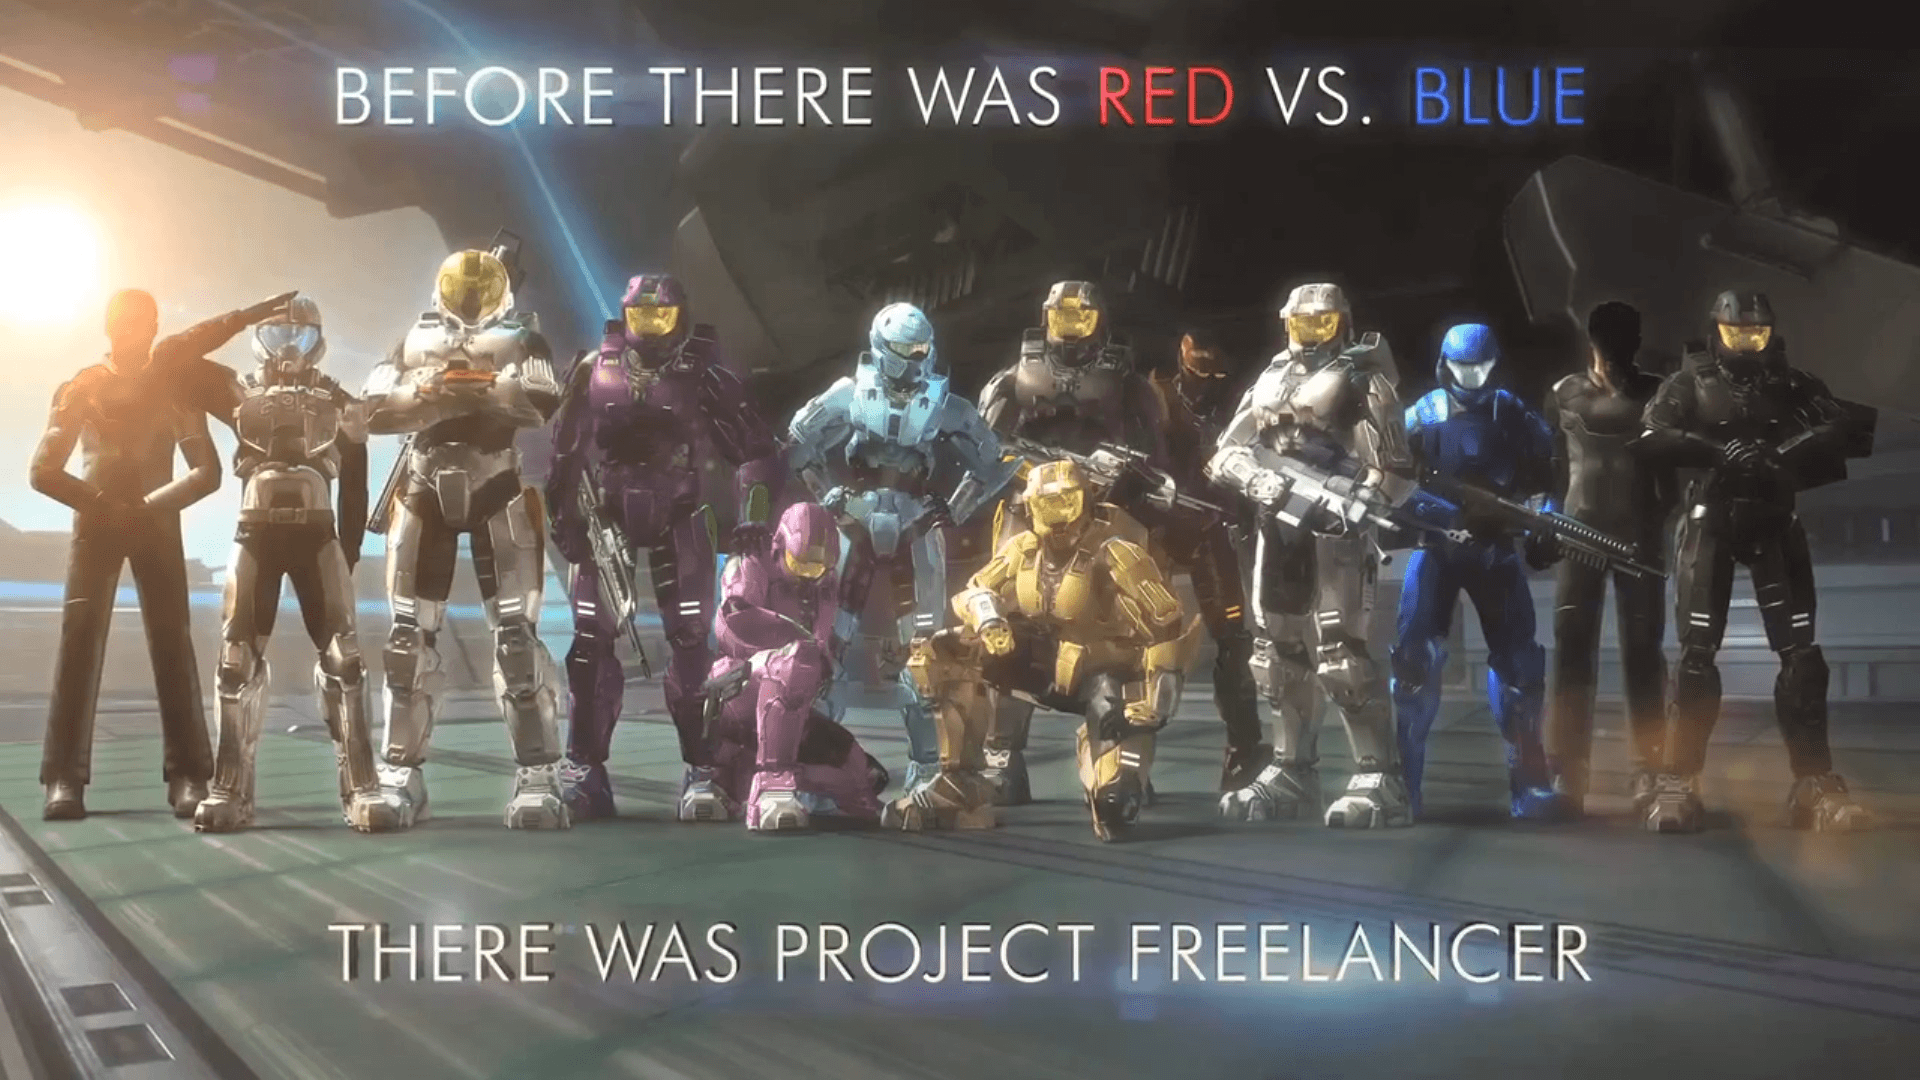 Halo Red Vs Blue Project Freelancer Wallpapers - Wallpaper ...